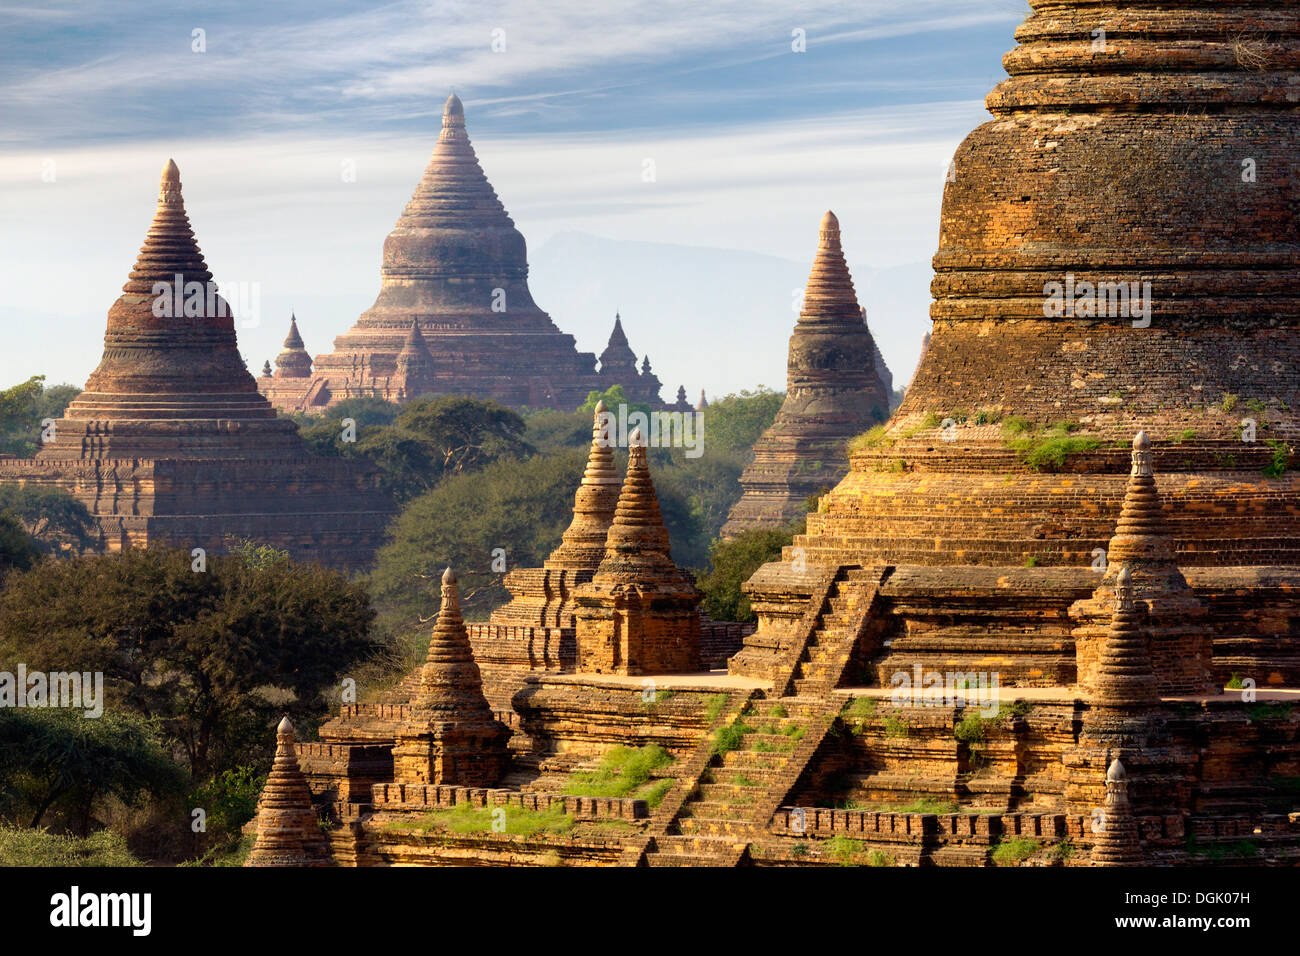 The Temples and Pagodas of Bagan in Myanmar in early morning. Stock Photo